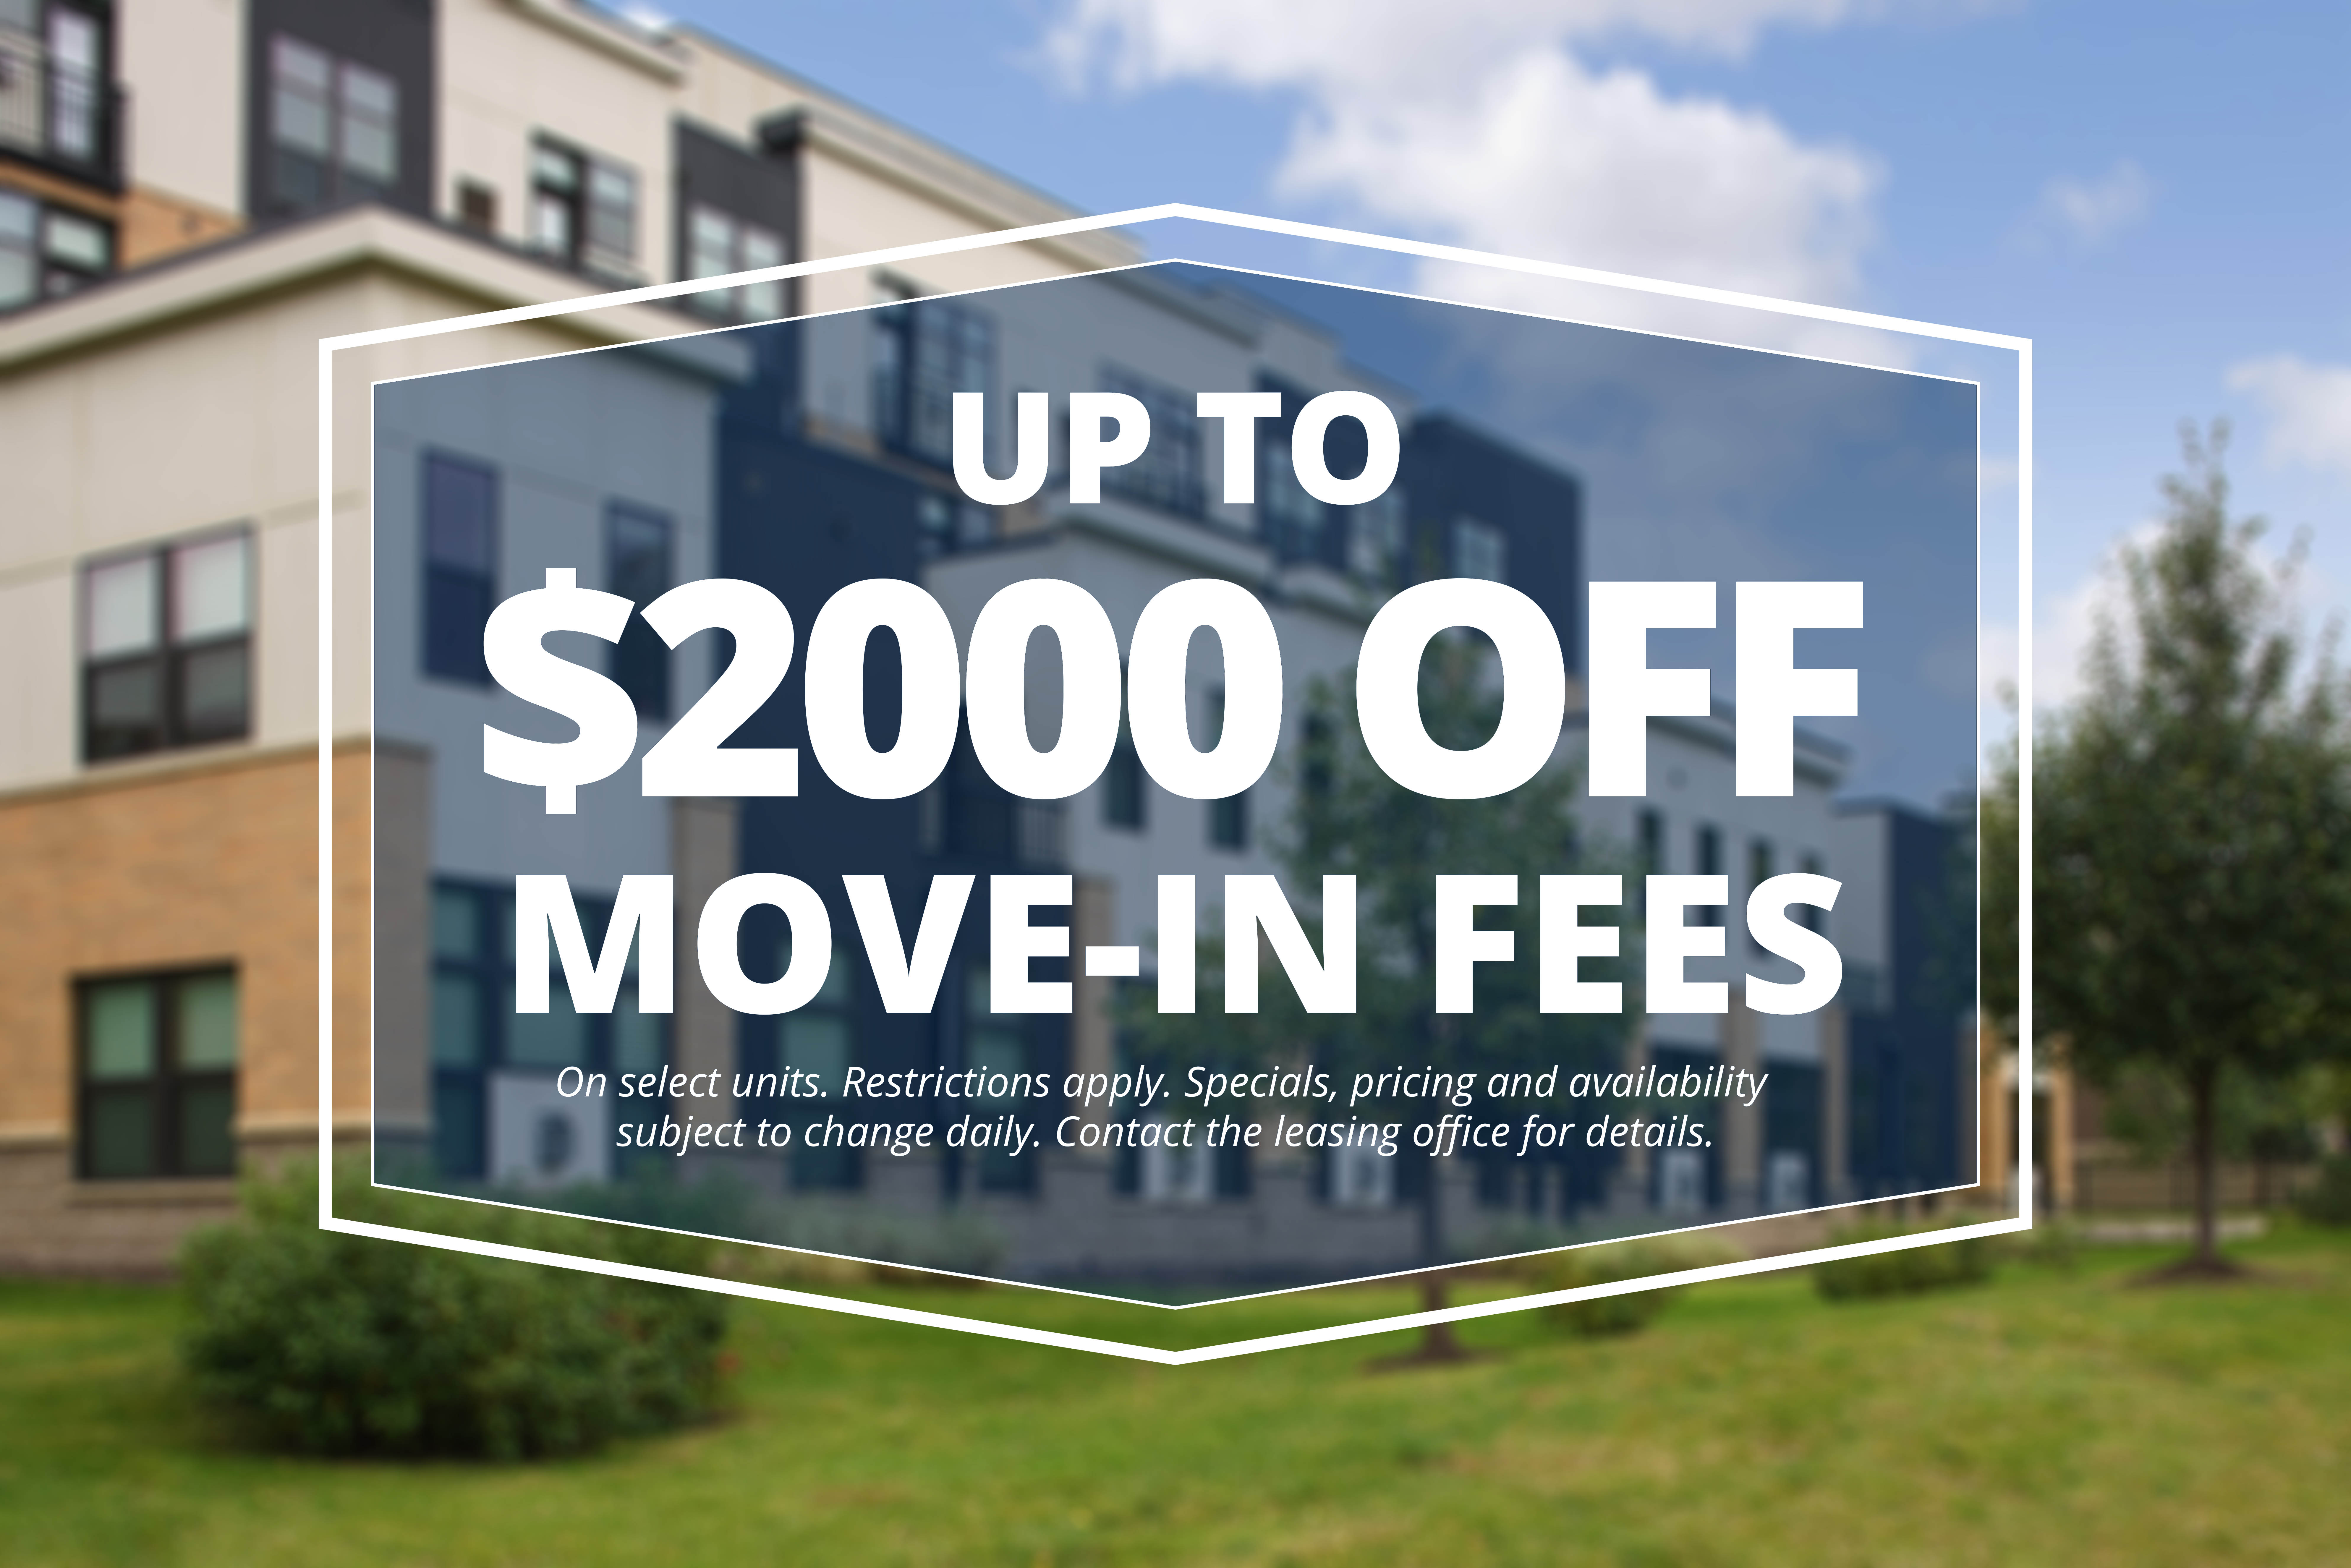 up to $2000 off move in fees